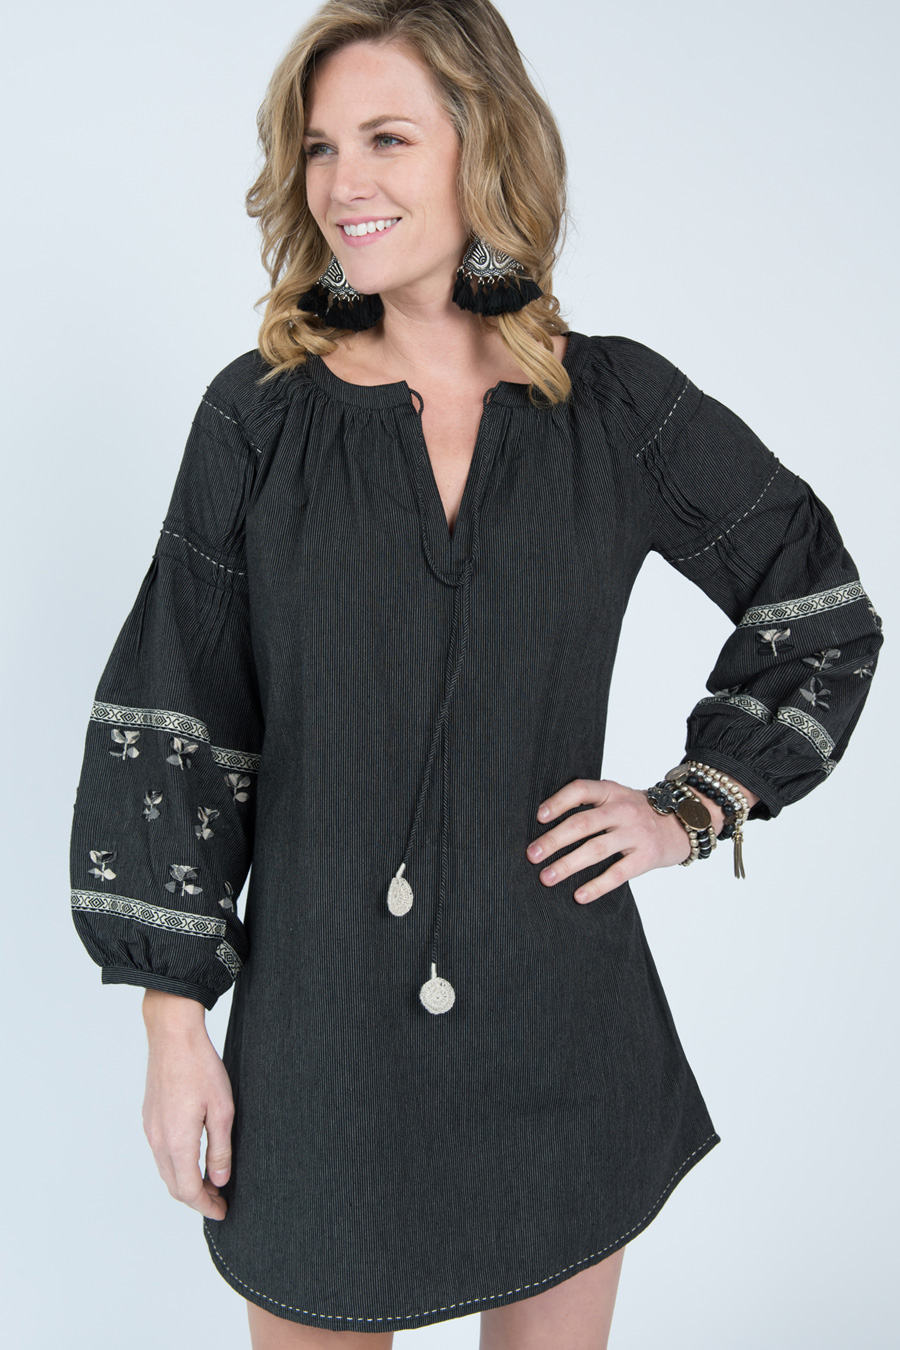 Ivy-Jane-Tunic-Style-321120-long-sleeve-